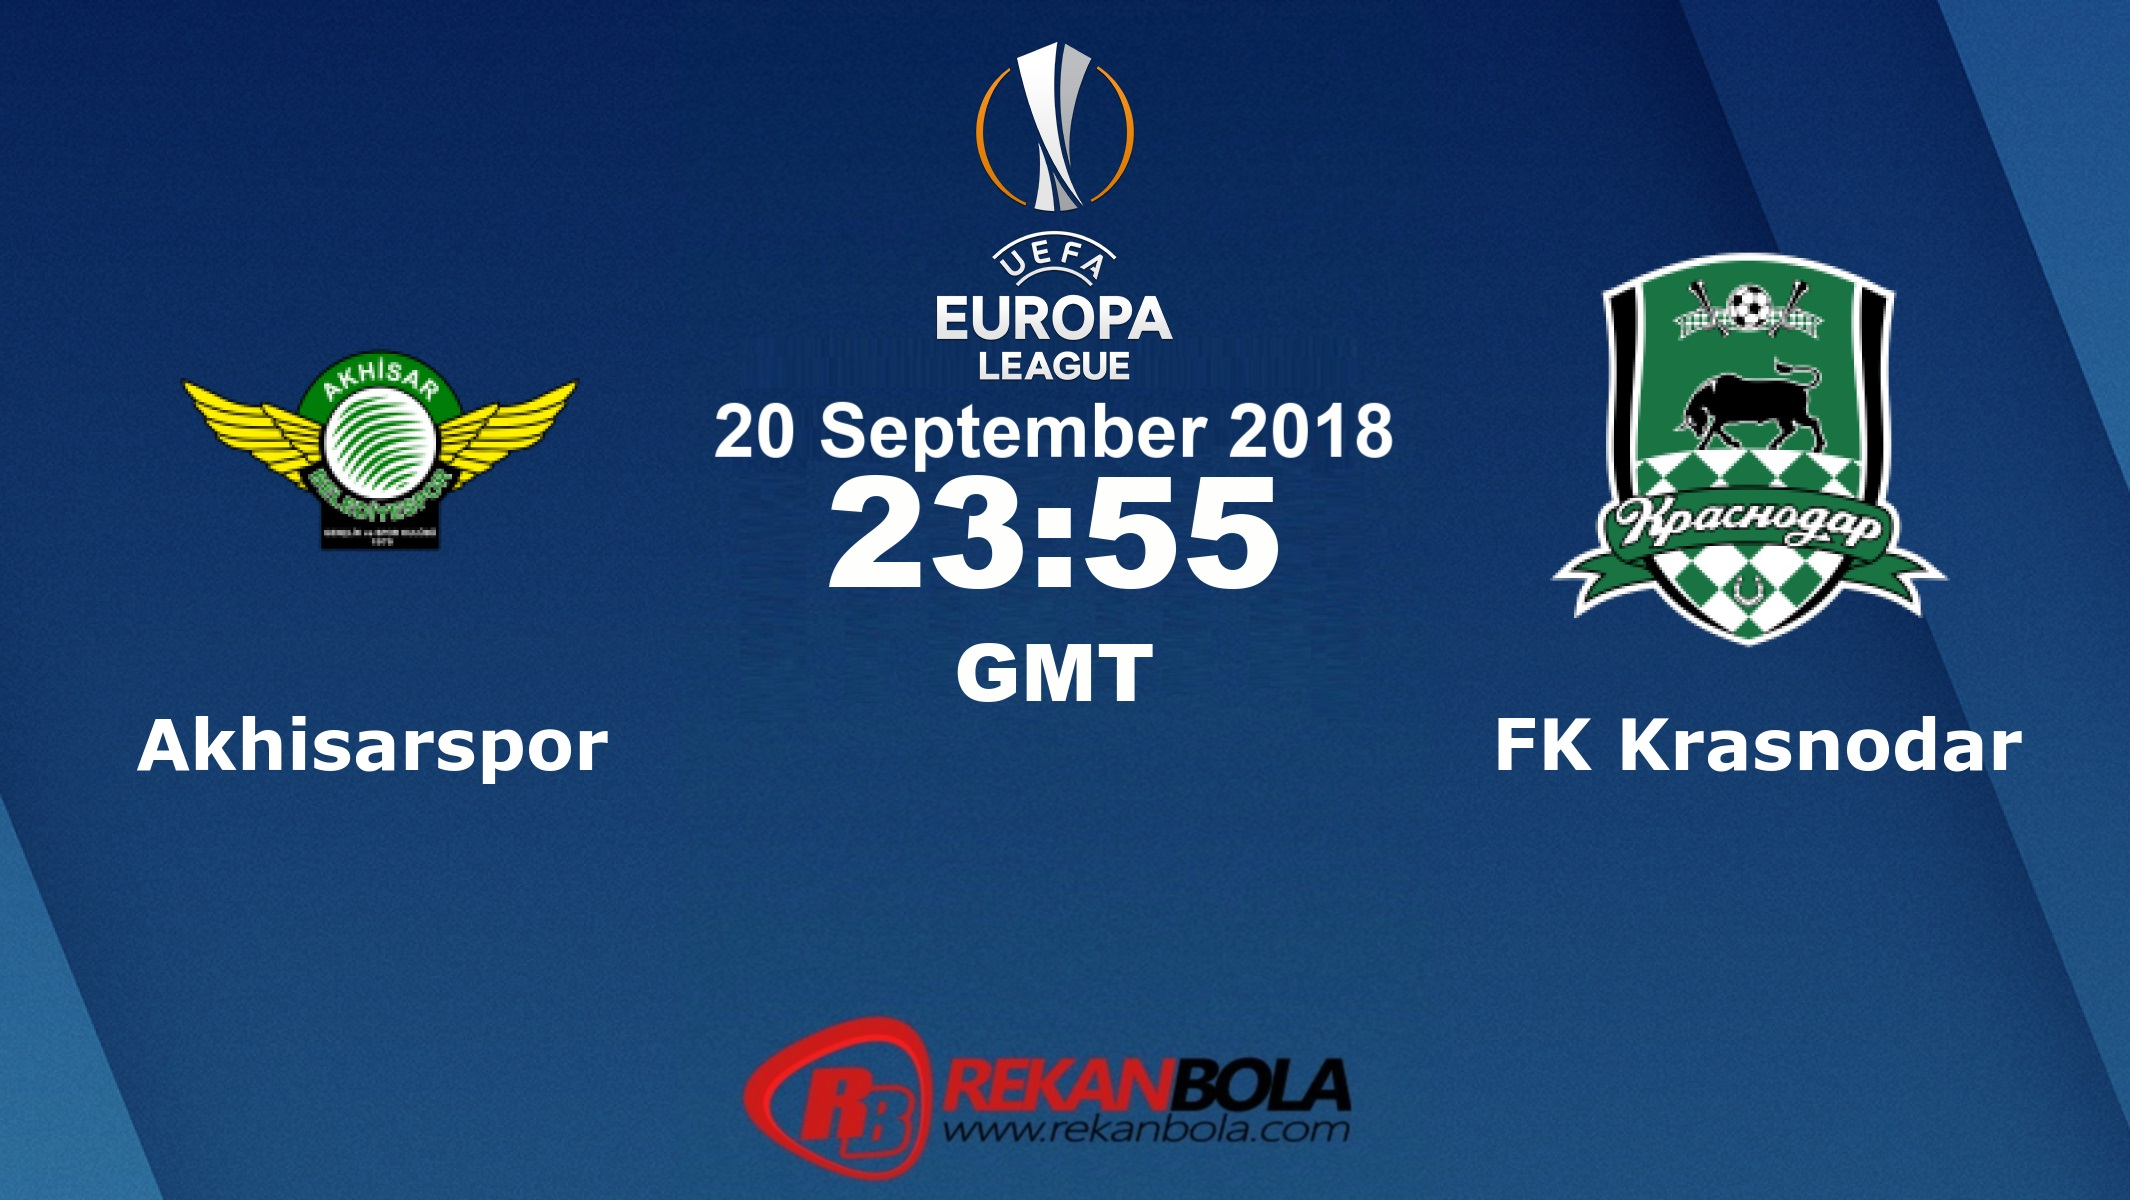 Nonton Siaran Live Streaming Akhisar Vs Krasnodar 20 September 2018